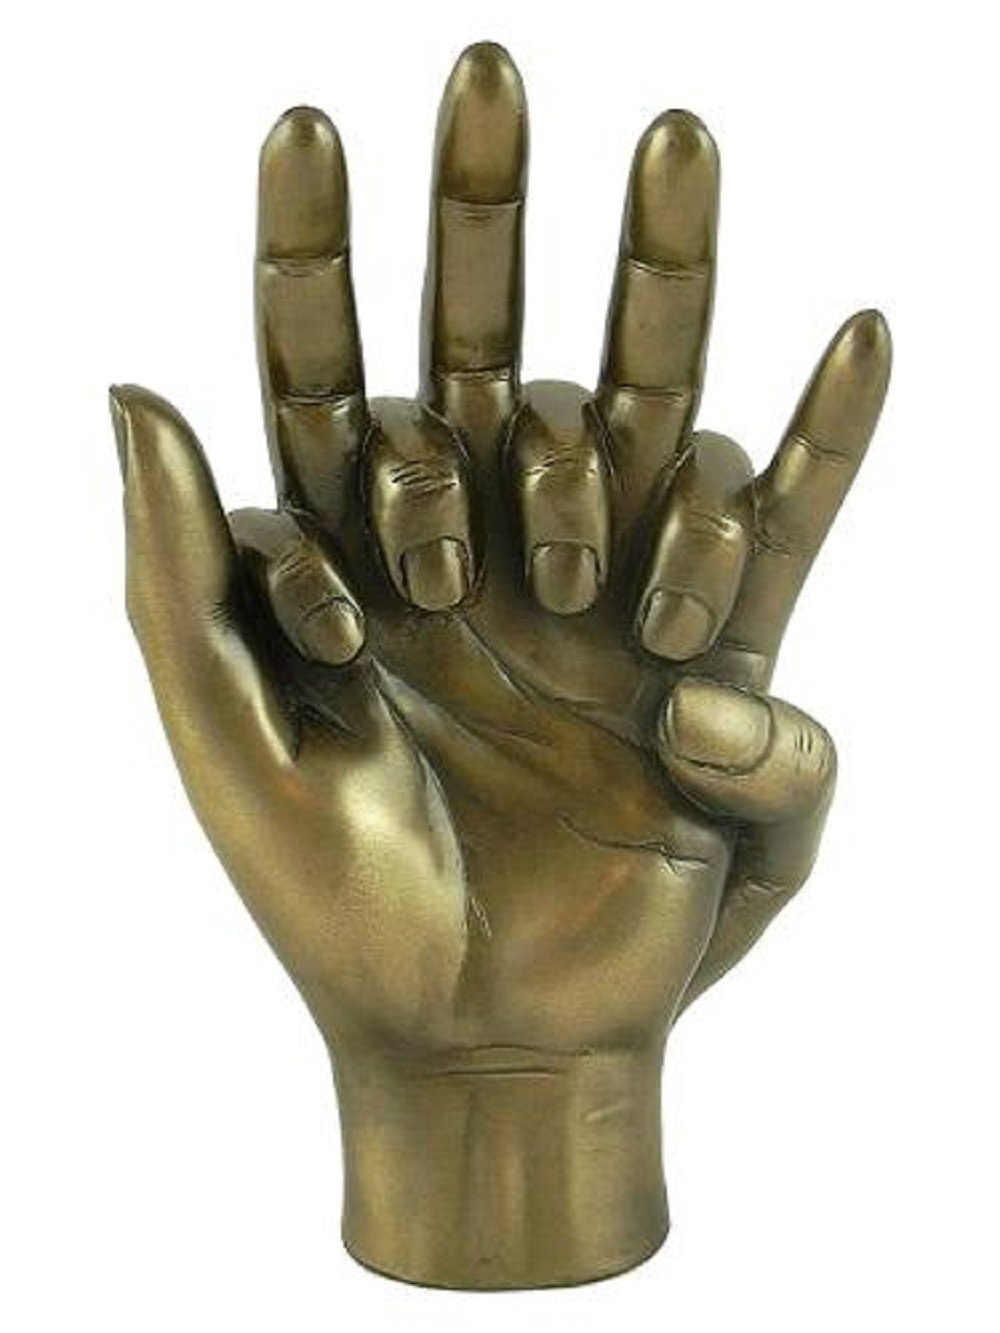 Lovers HANDS ENTWINED Bronzed Sculpture Engagement Wedding or Anniversary